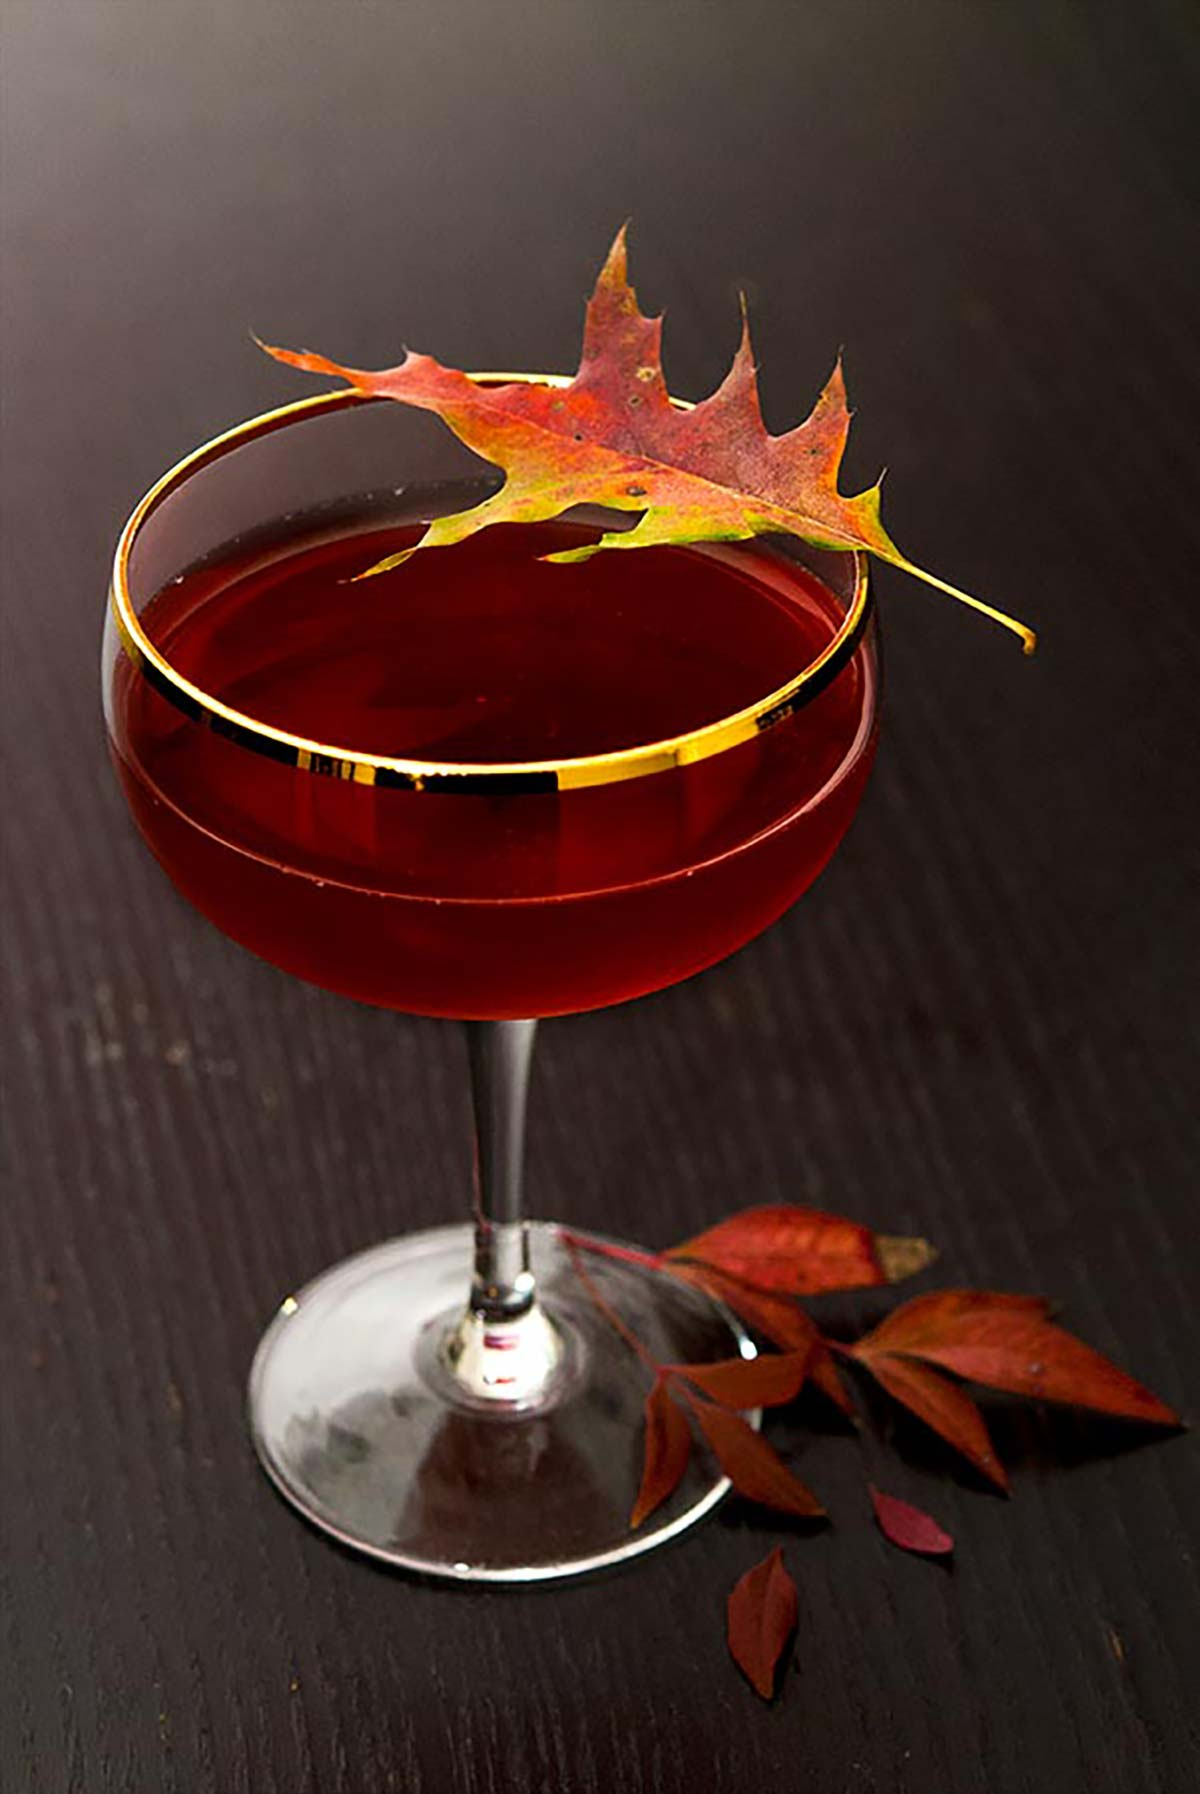 A red cocktail garnished with a colorful, autumn leaf on a dark wood table with leaves at its base.